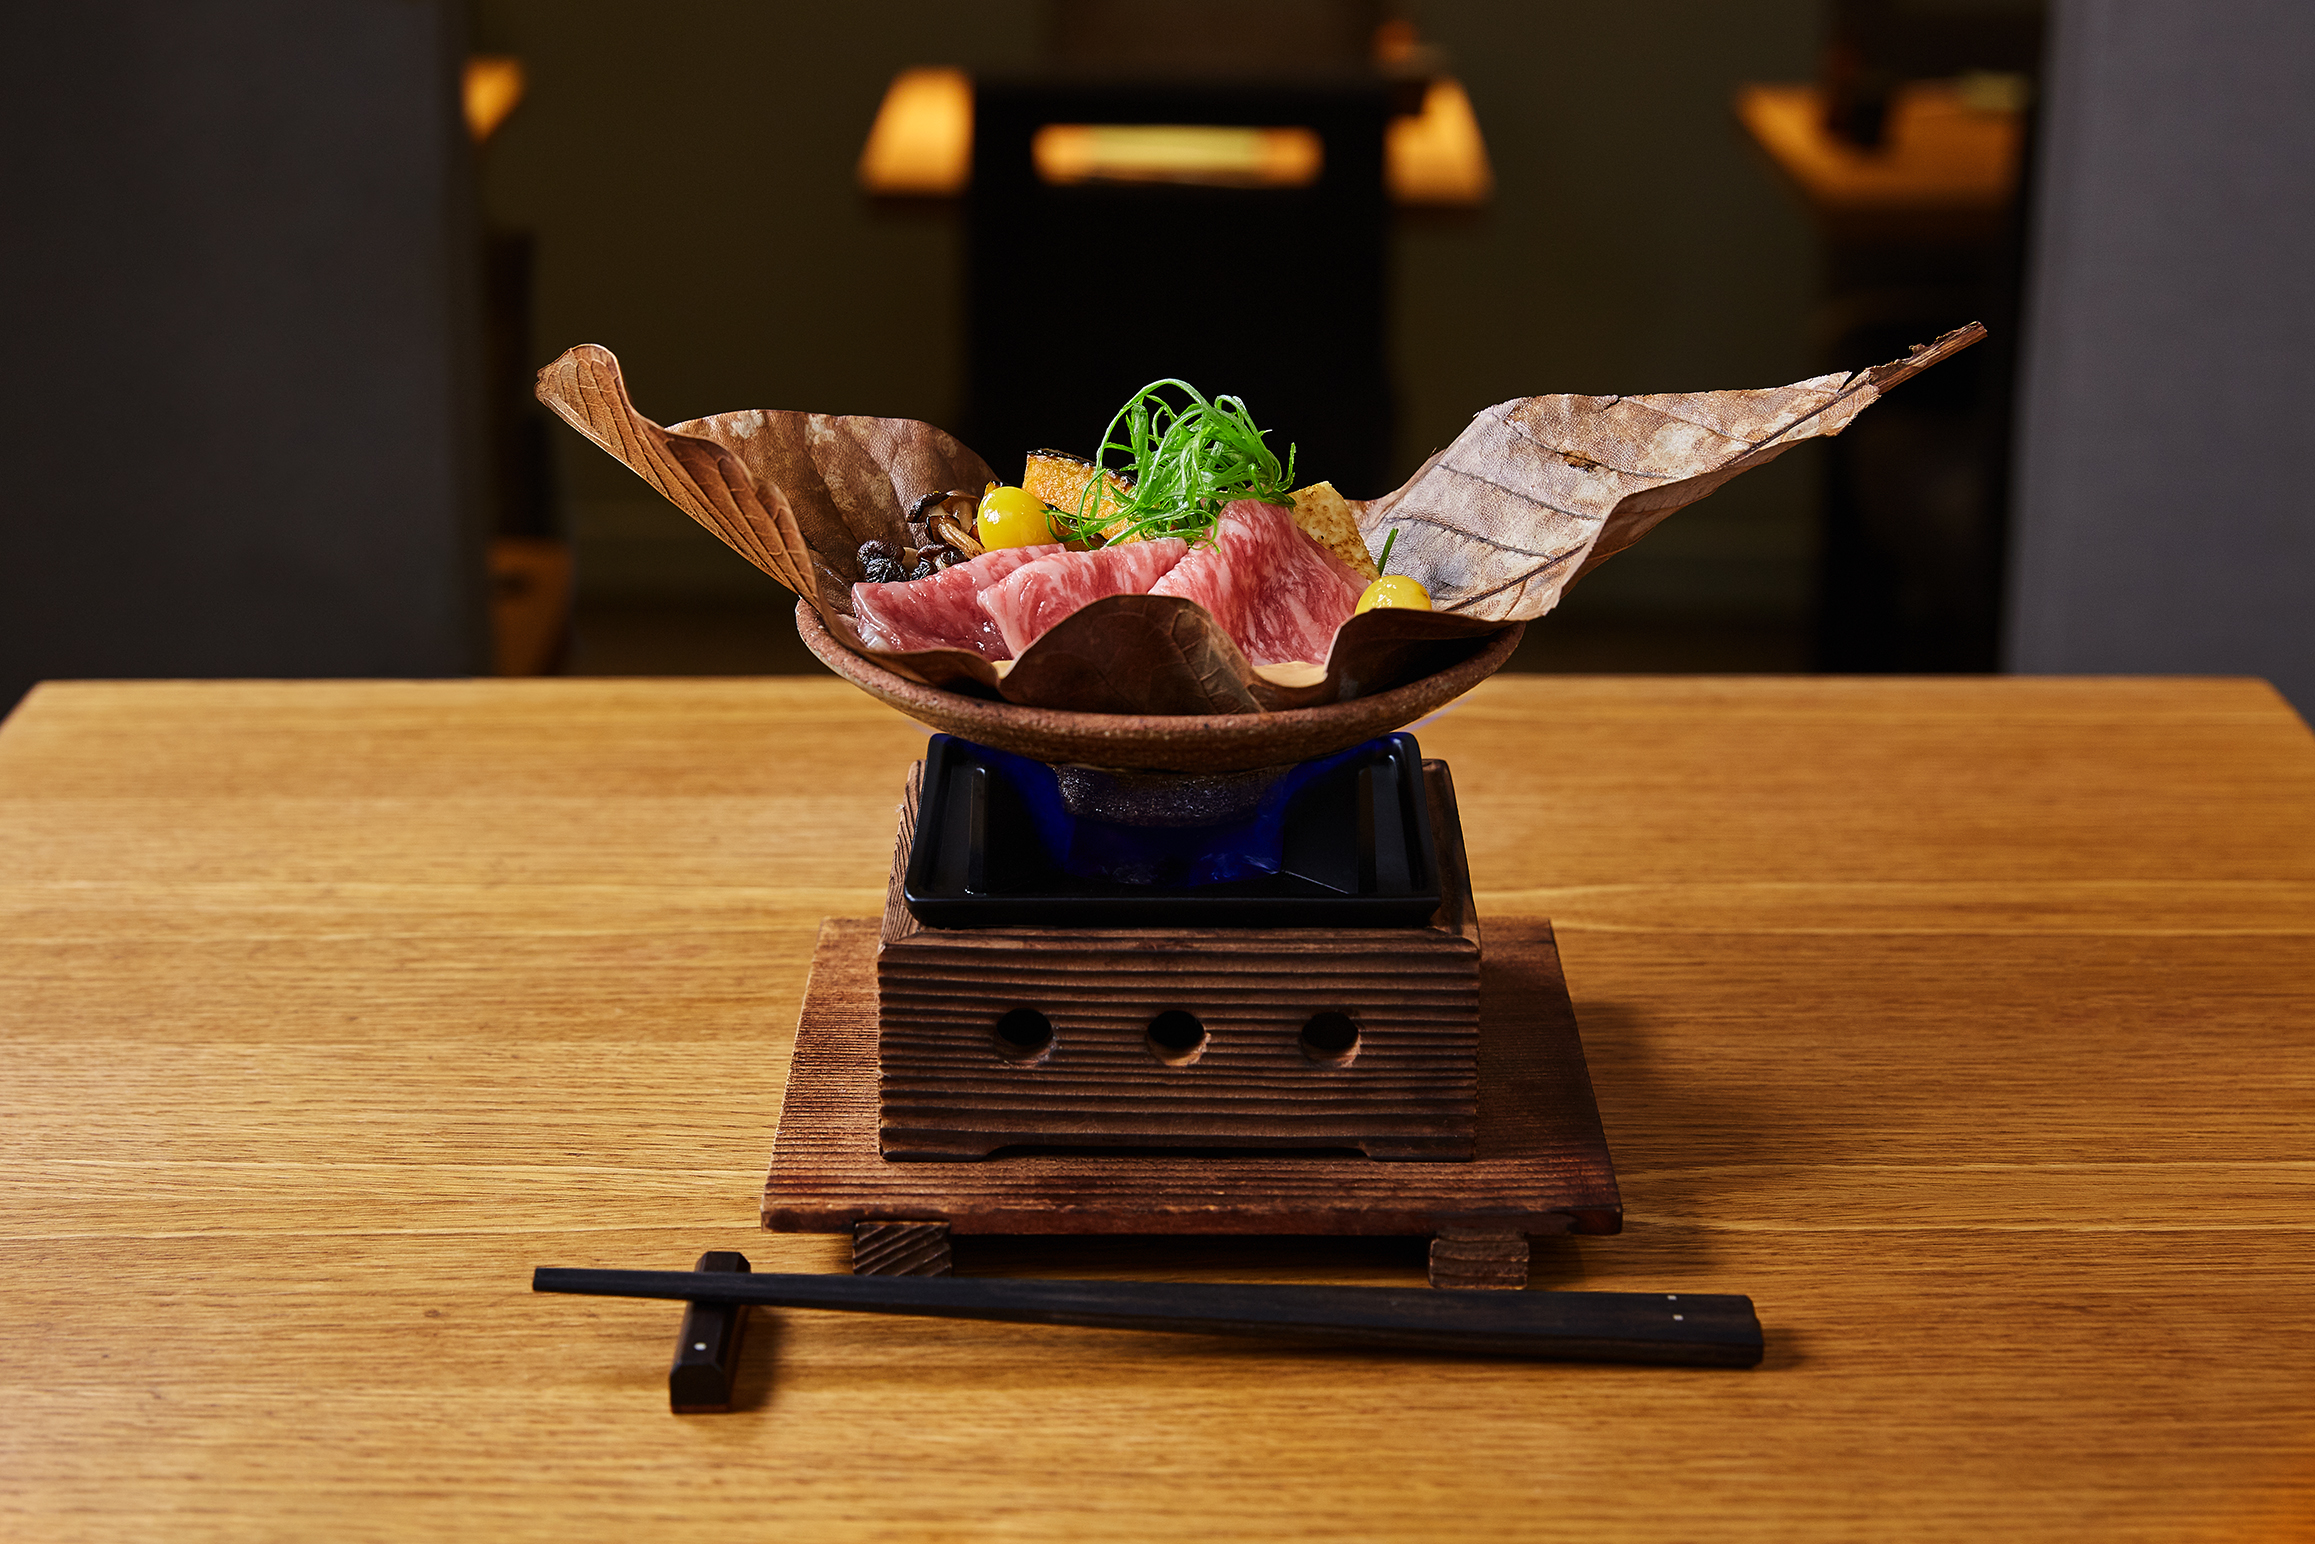 This image is from a recent shoot for an up-market, Japanese restaurant started by the owner's late father 40 years ago. It has fantastic food and has recently been fully refurbished. We were invited to help them show their new look to the world.